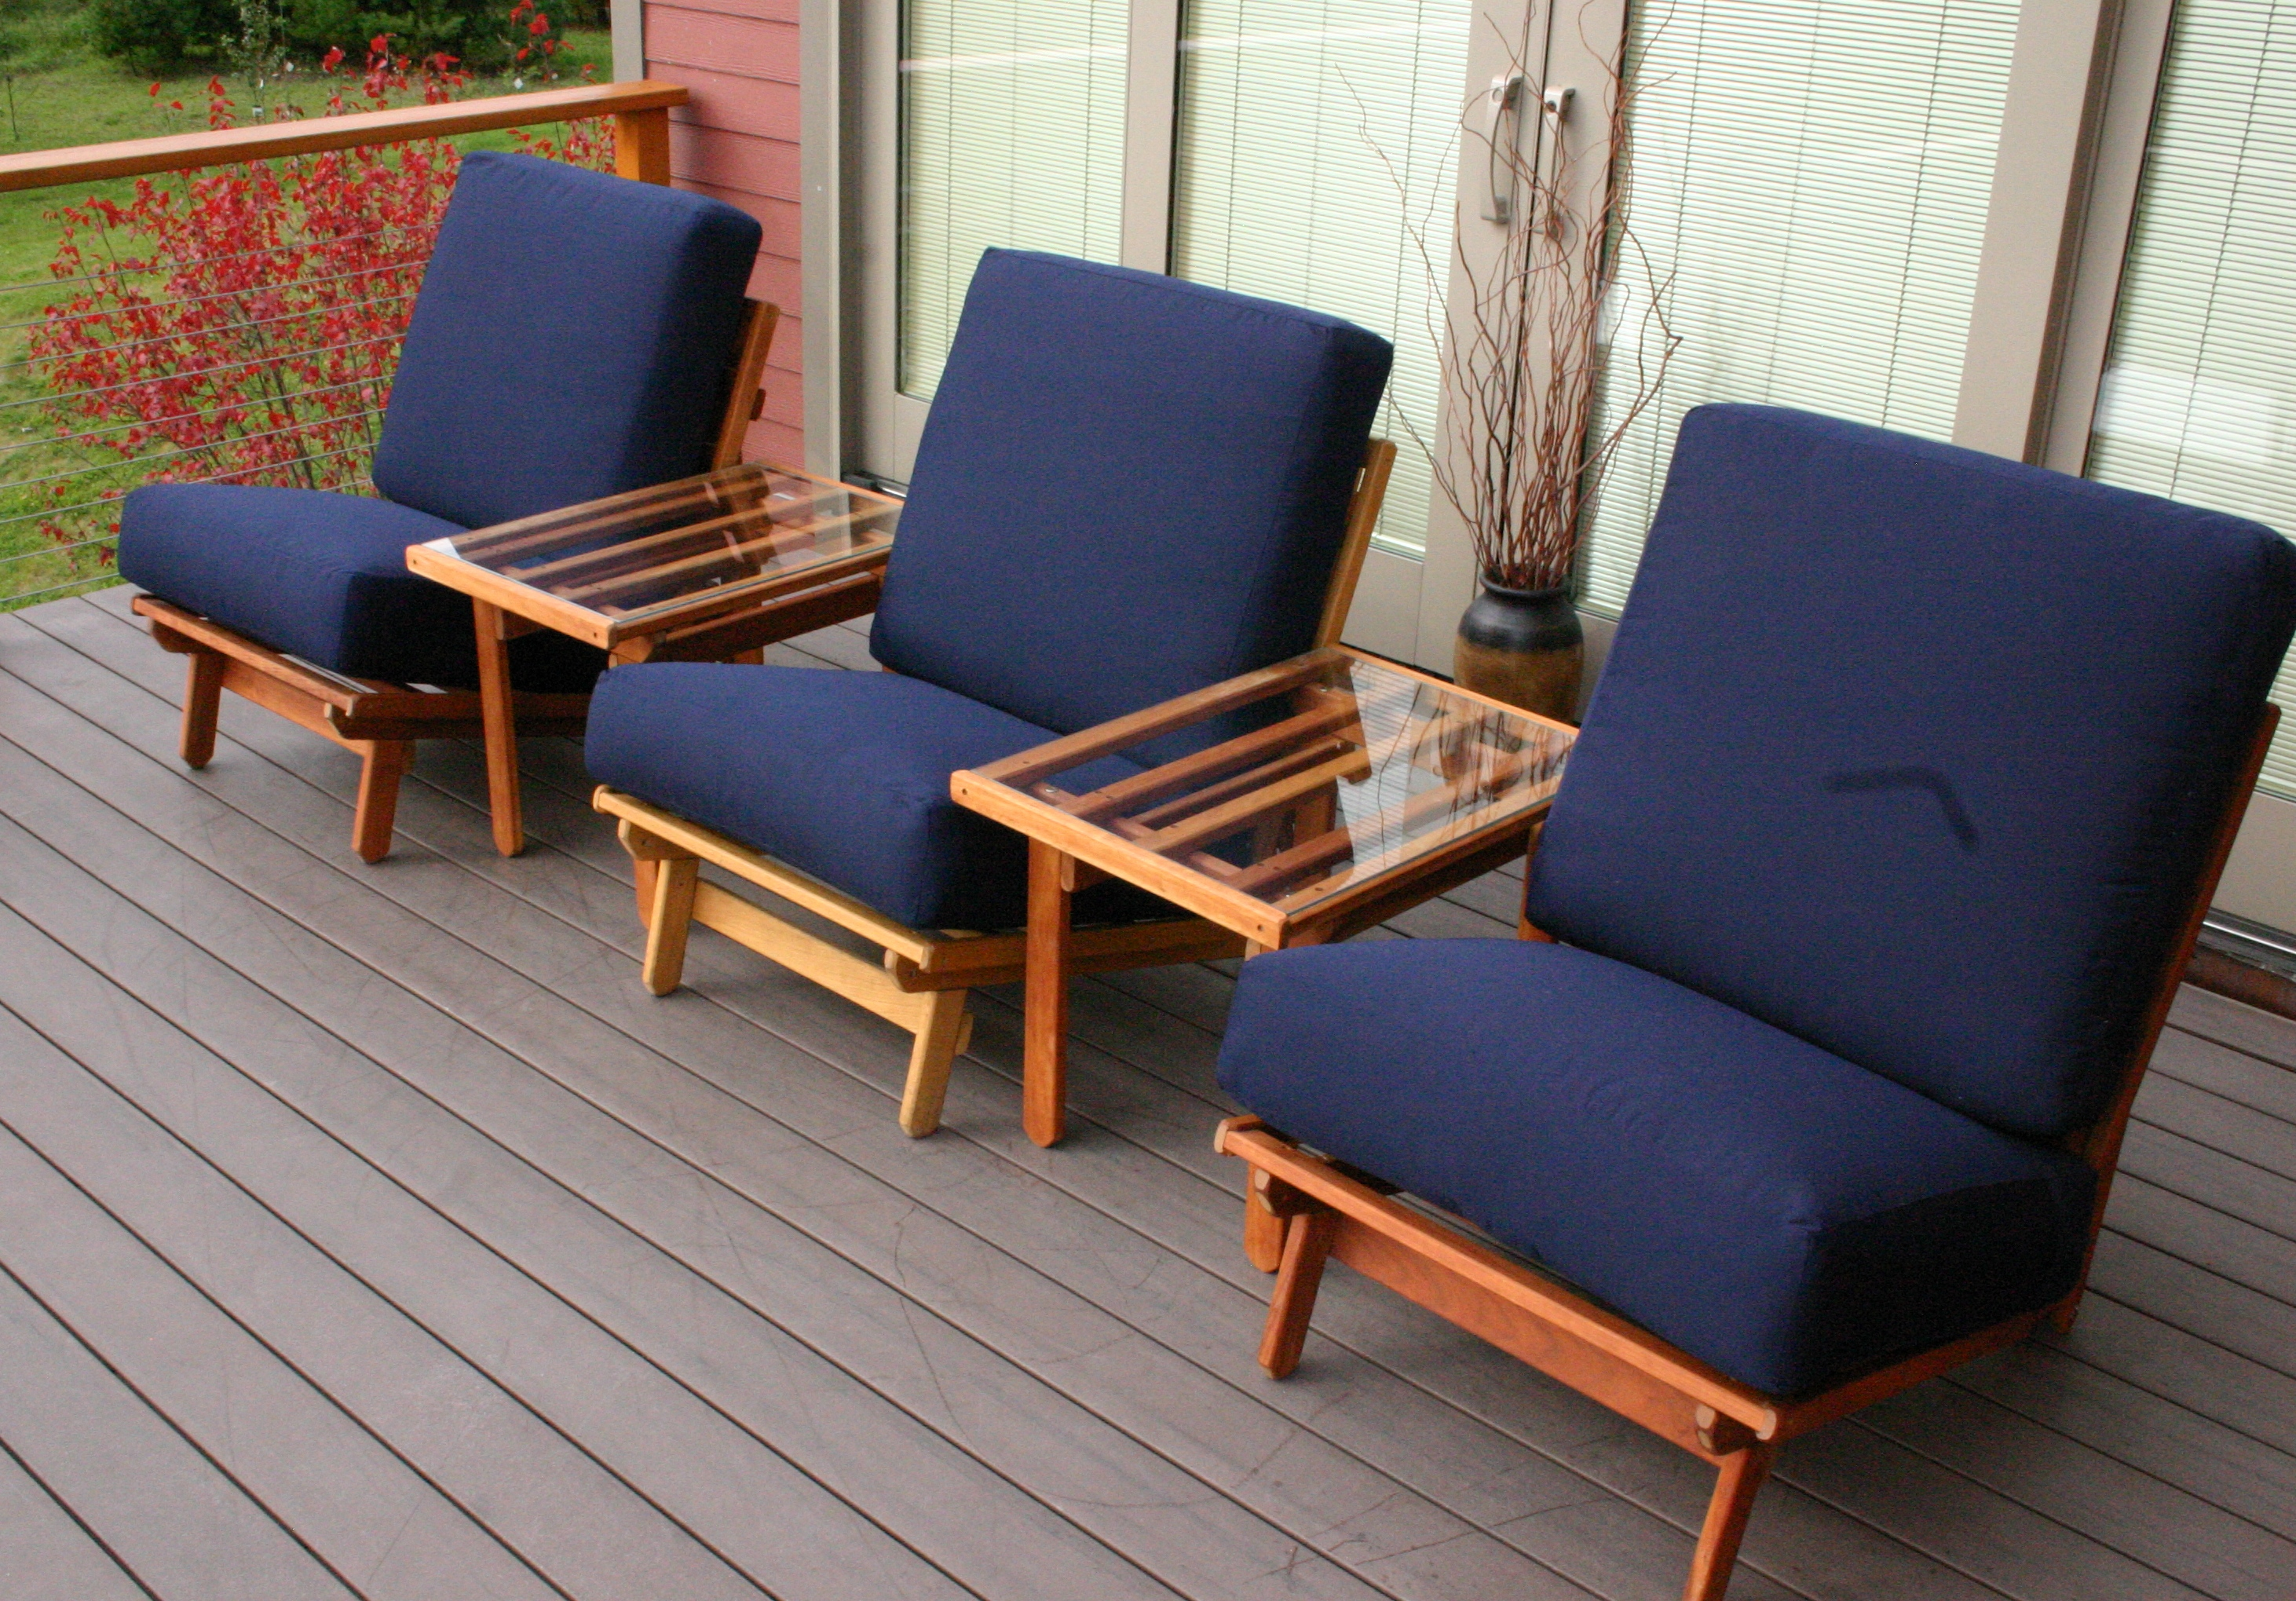 Three Freedom Chairs on the Deck